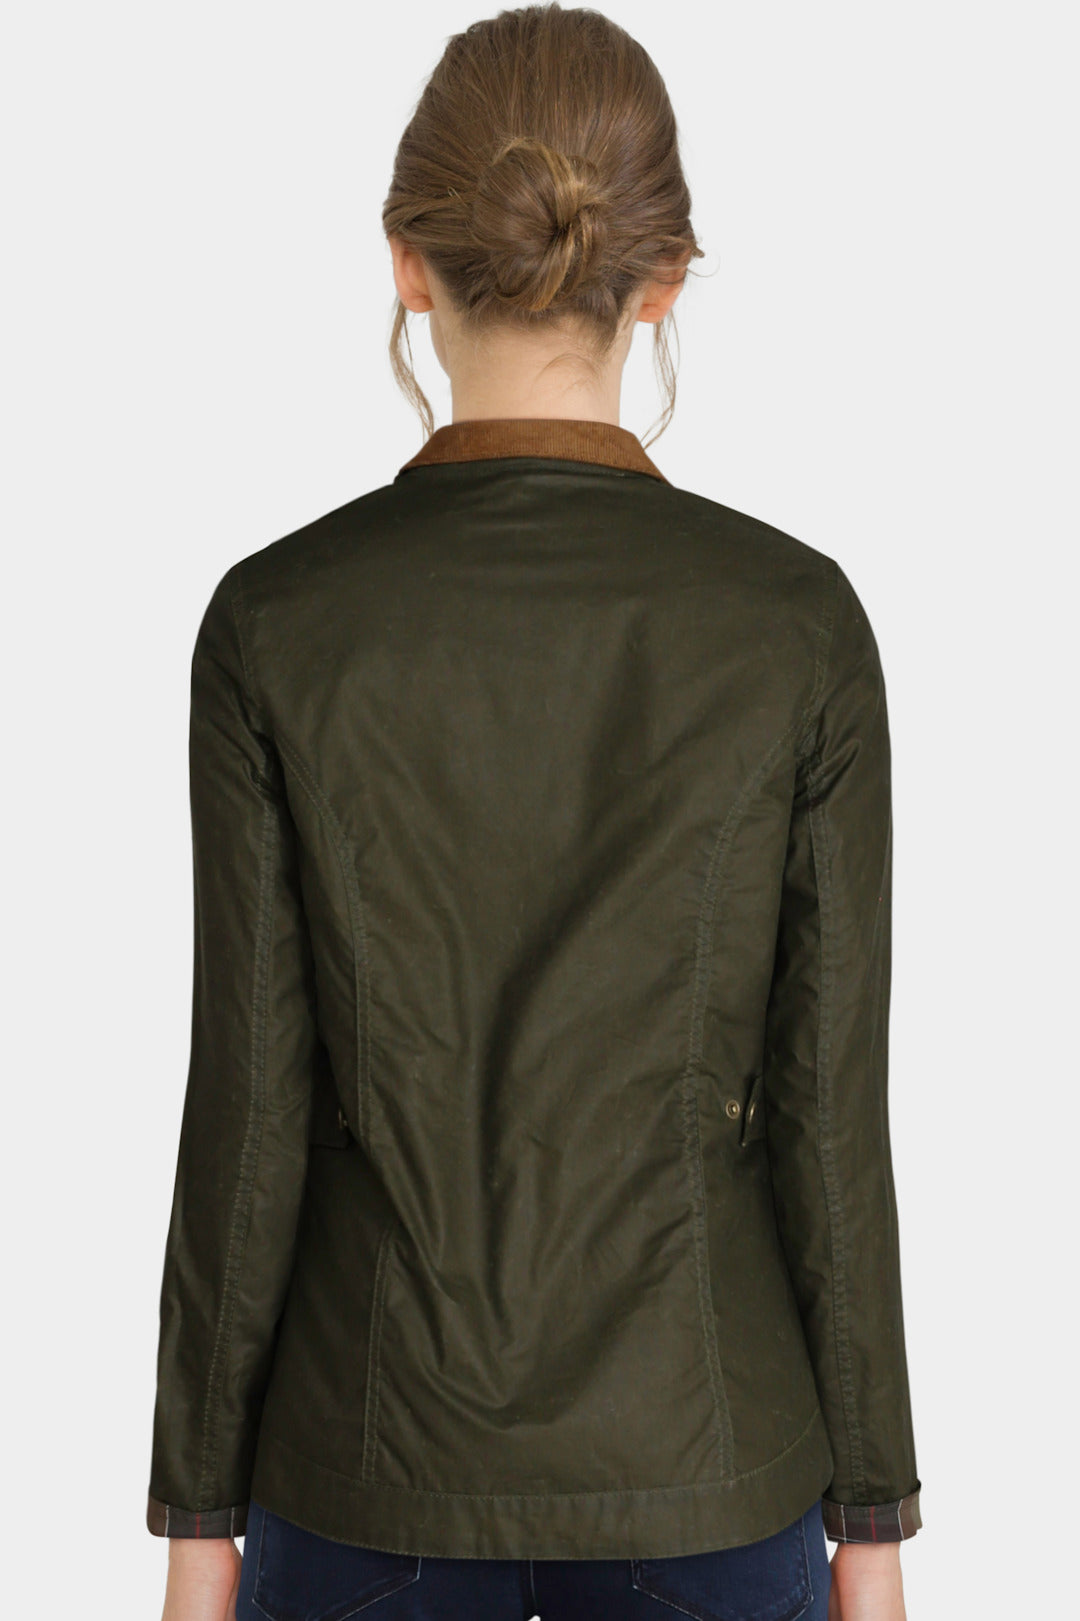 Green Barbour Jacket